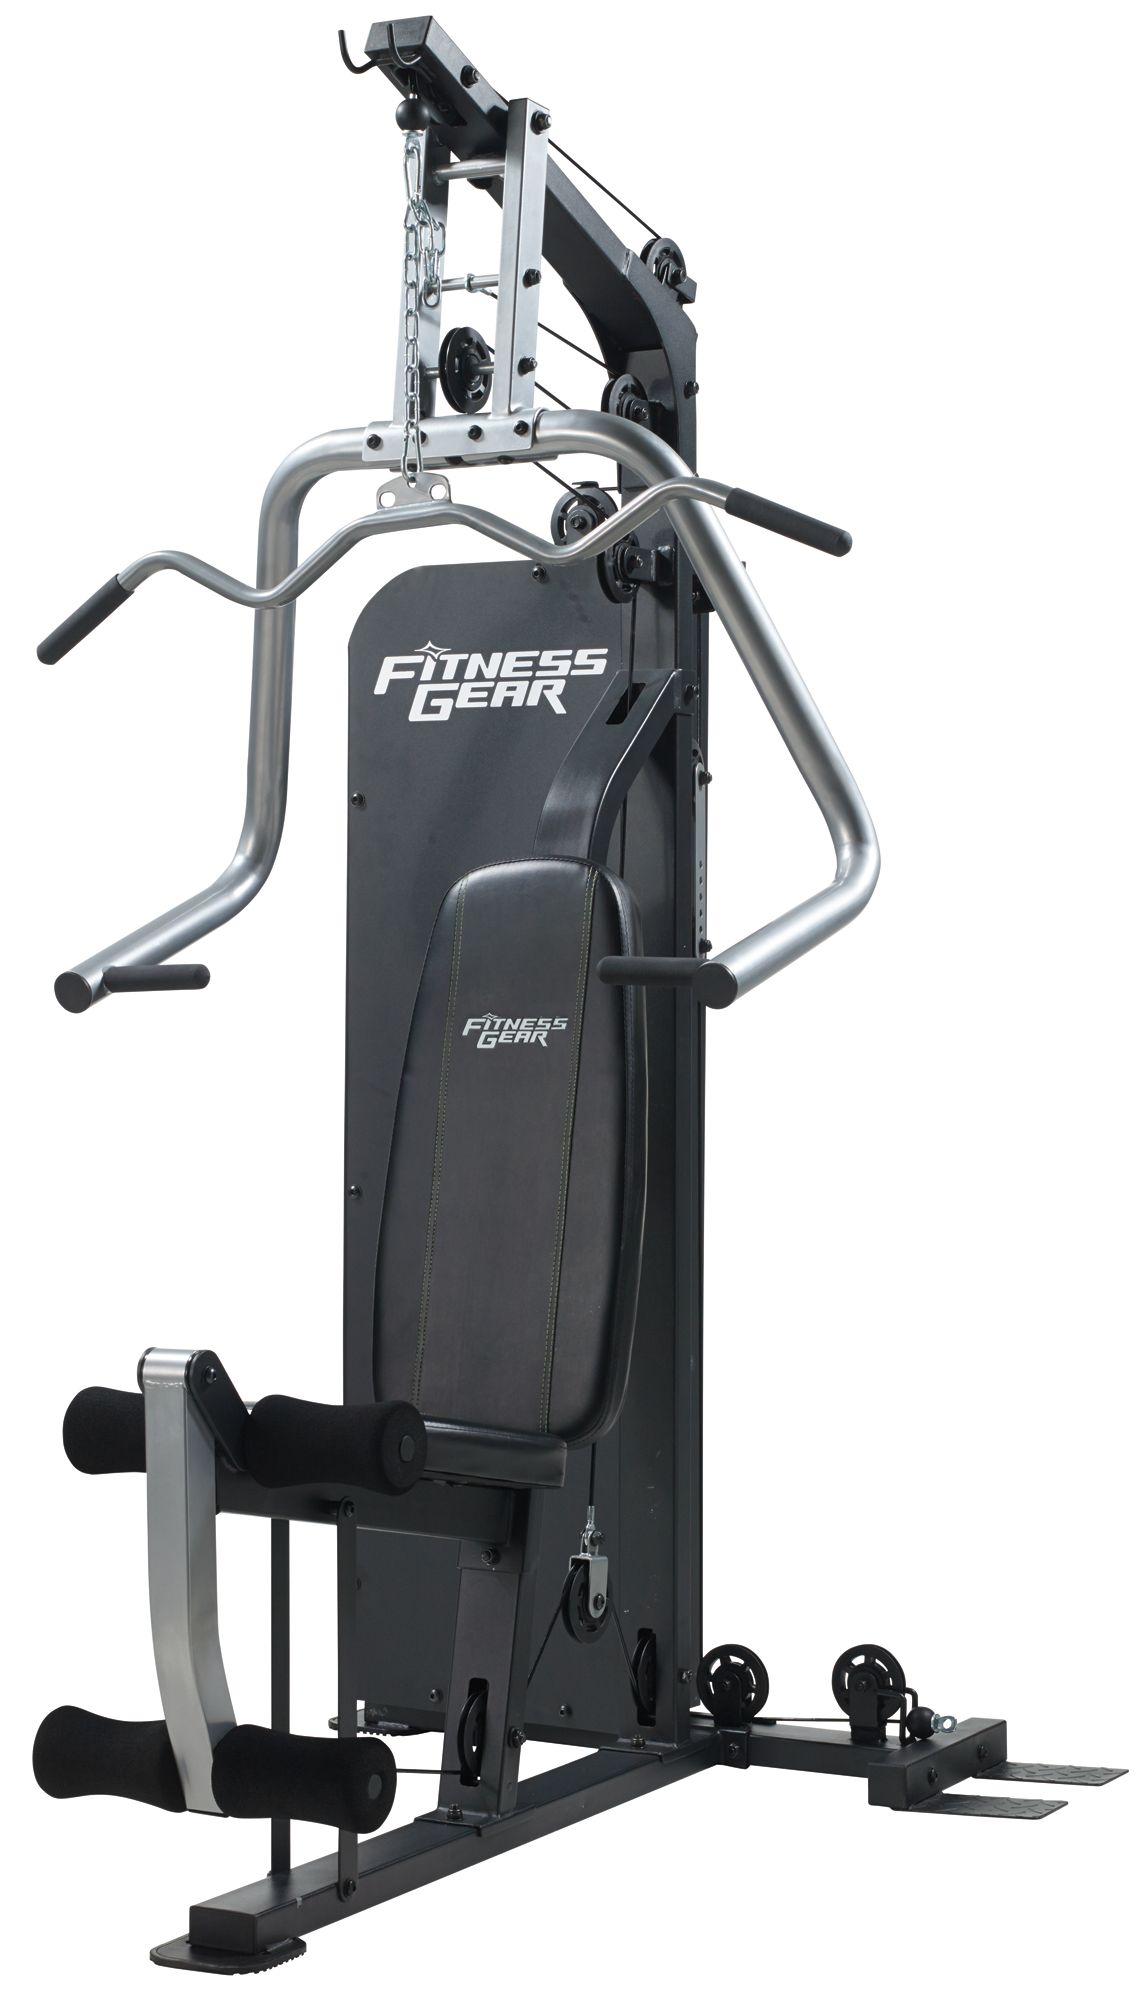 Fitness Gear Home Gym DICKS Sporting Goods - Home gym equipment for sale